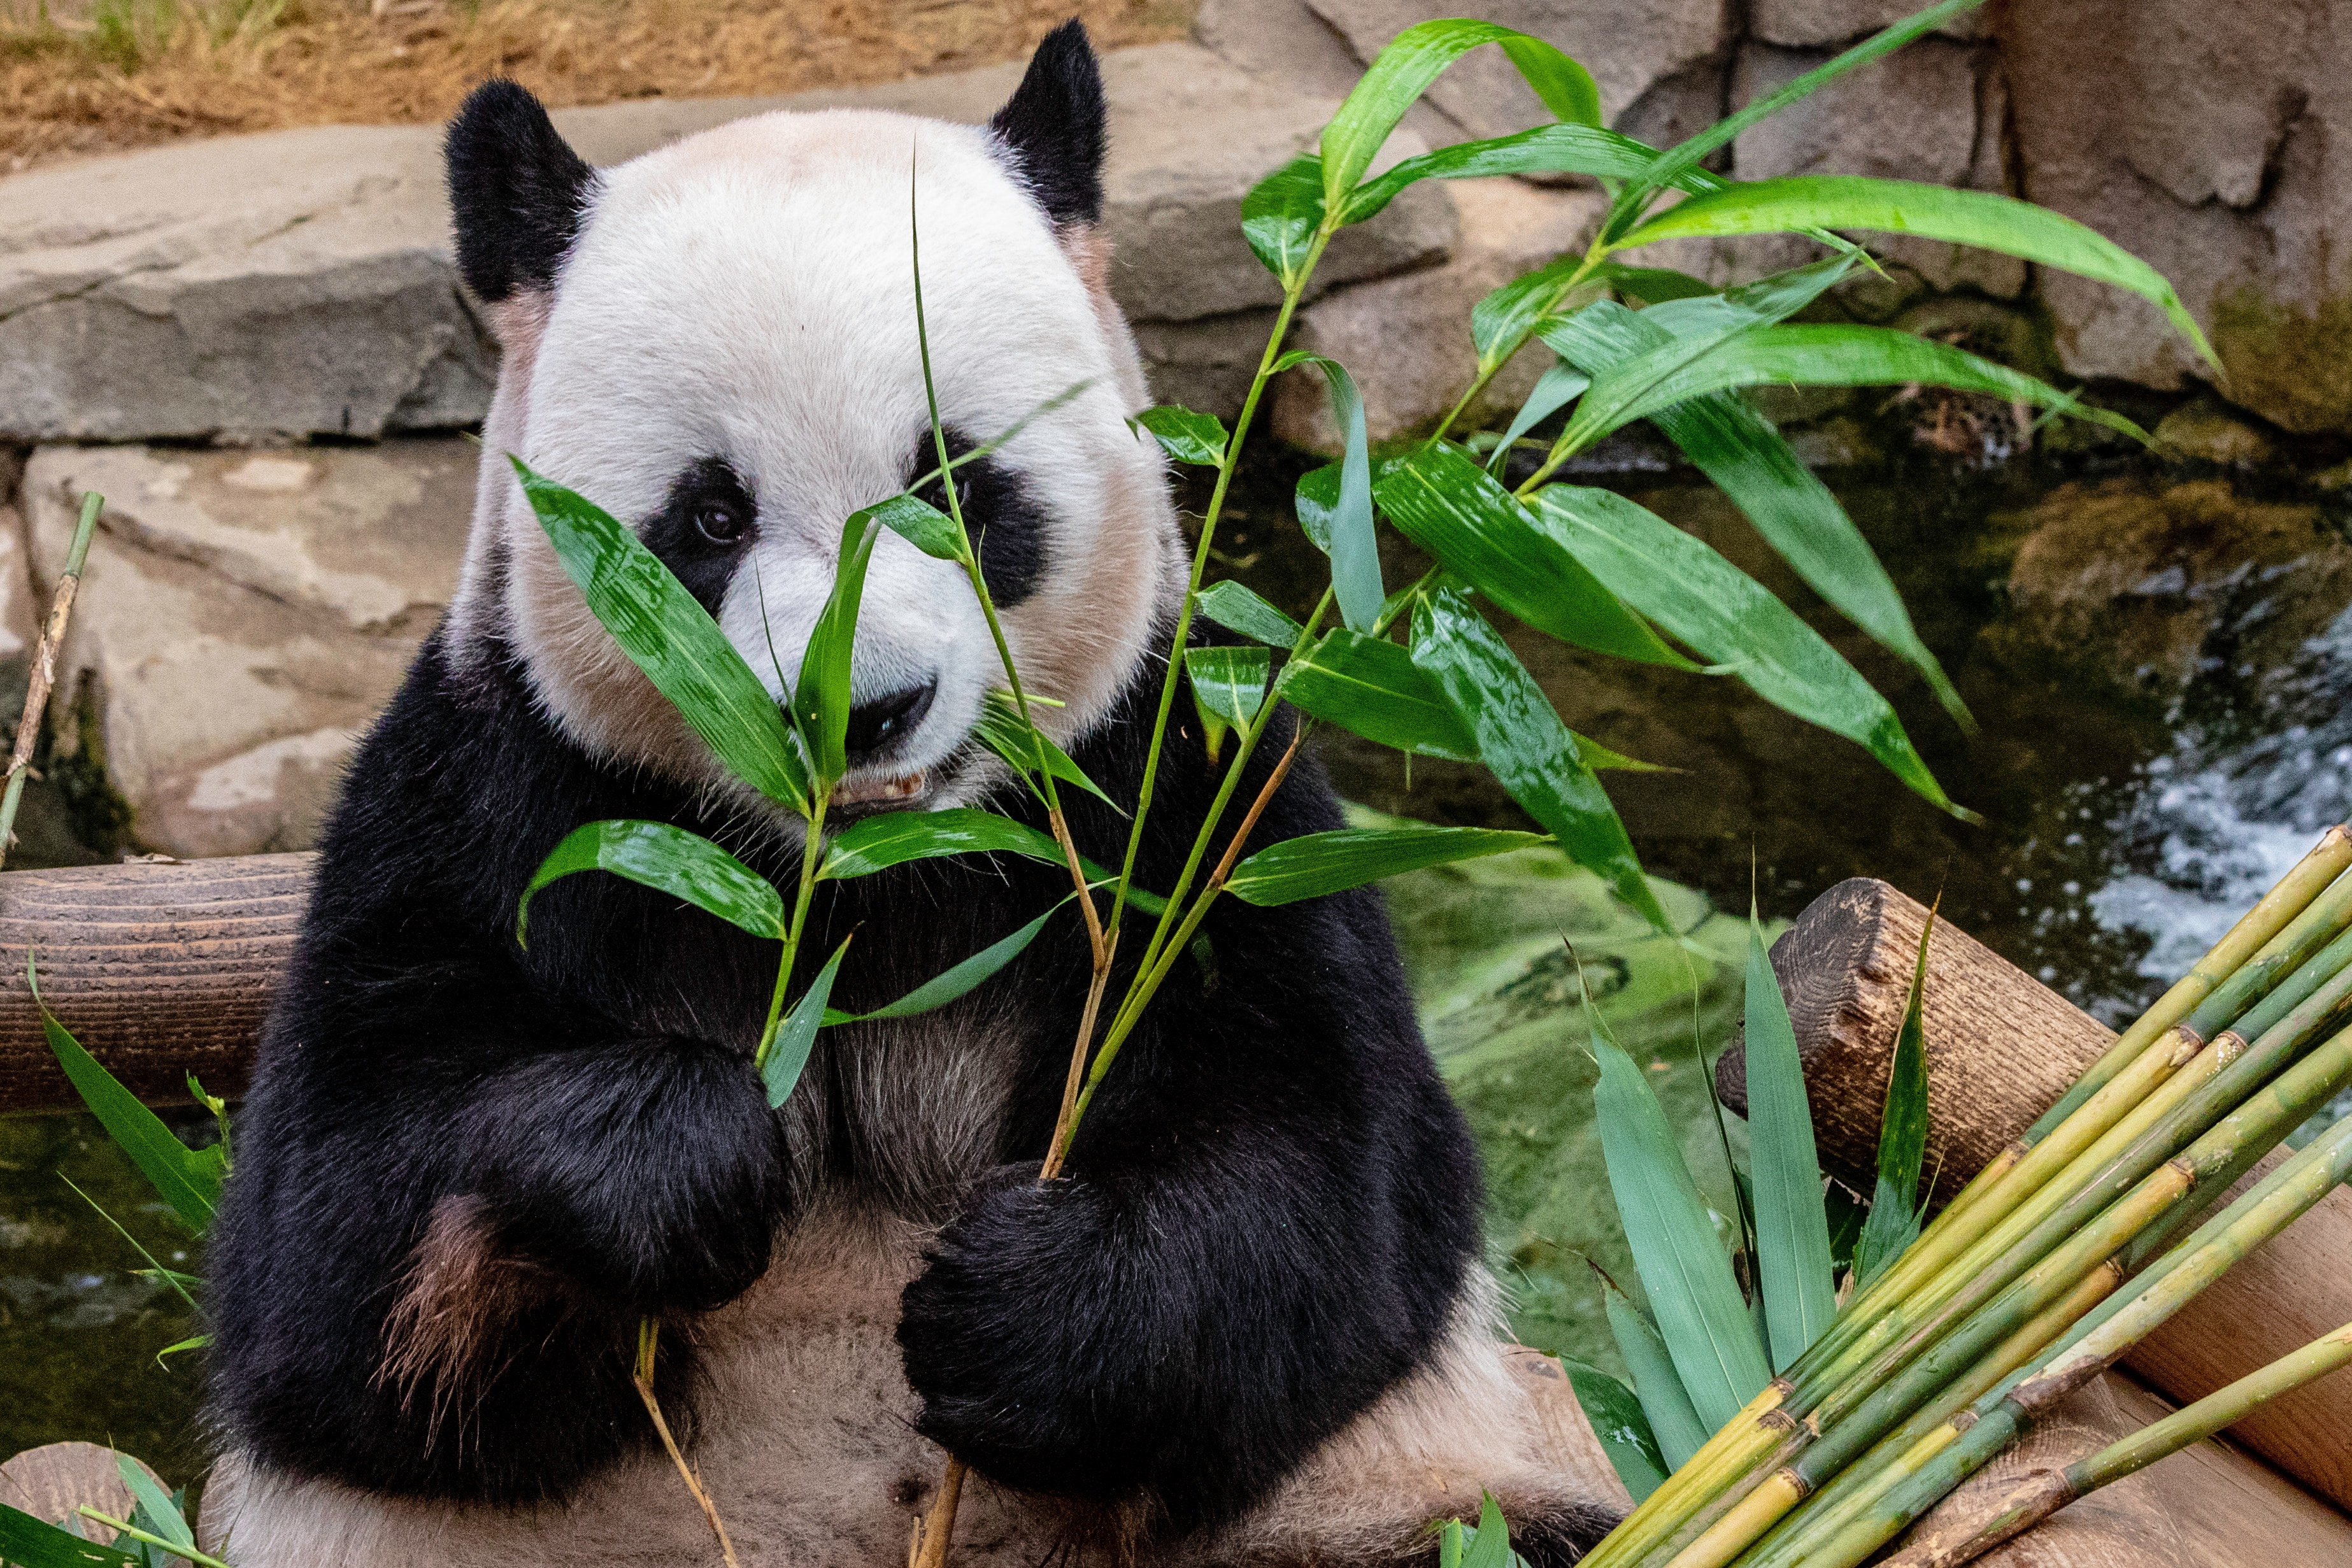 92169 download wallpaper Animals, Panda, Bamboo, Bear, Food screensavers and pictures for free